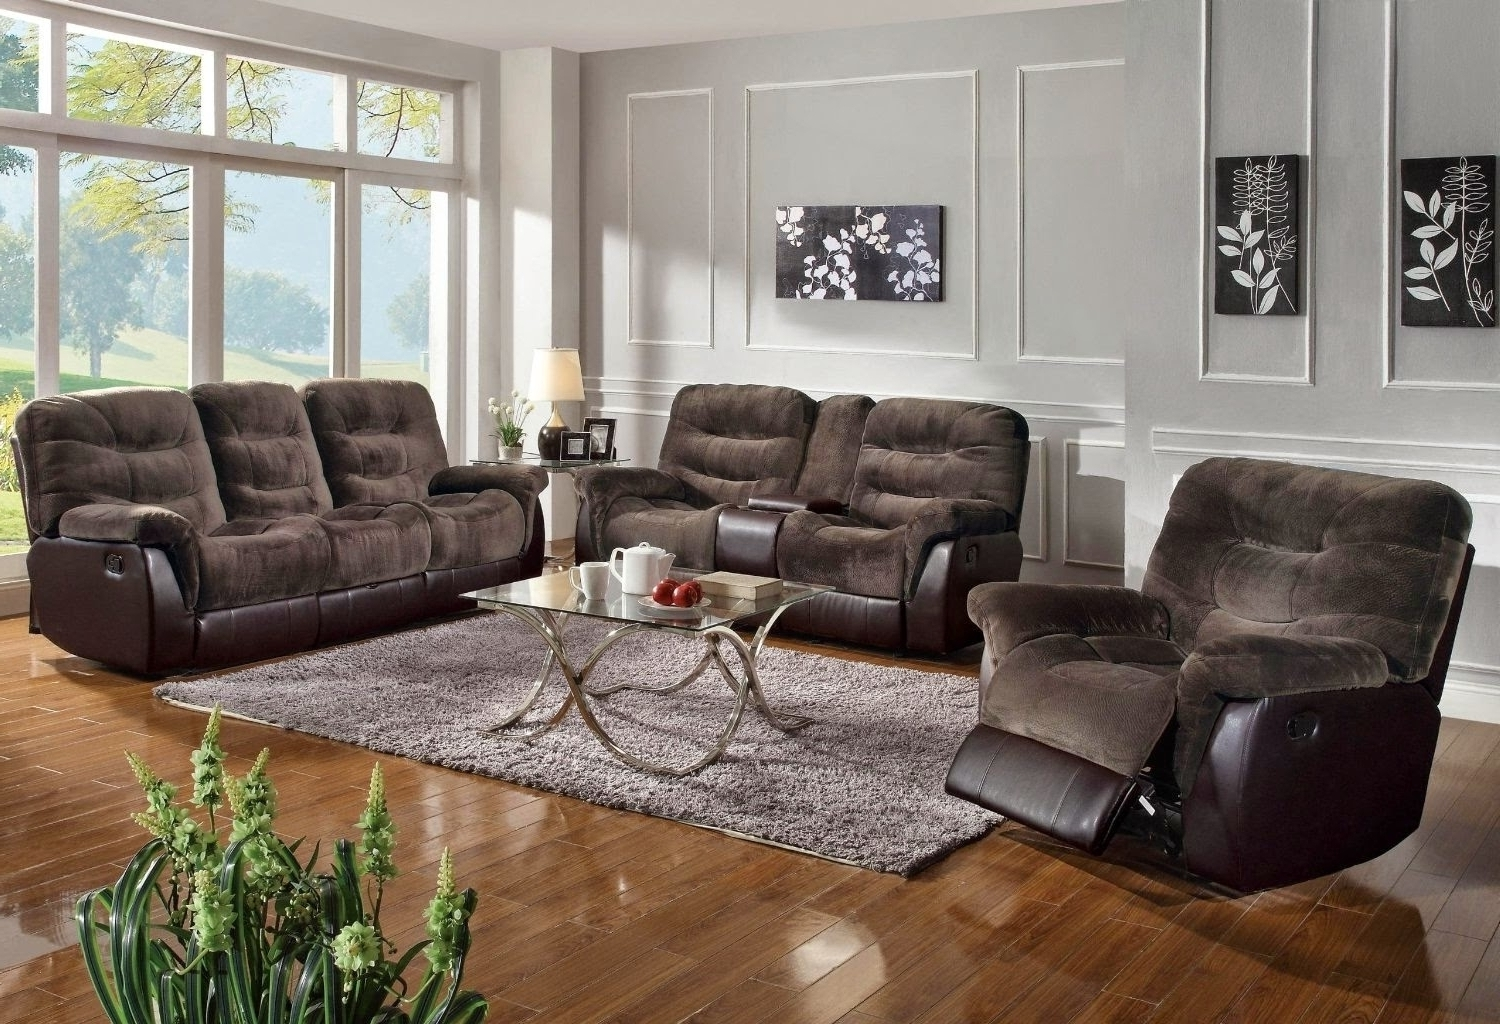 Most Recent Sectional Sofas With Recliners For Small Spaces For Furniture Reclining Sectional Sofas For Small Spaces Reclining (View 9 of 20)